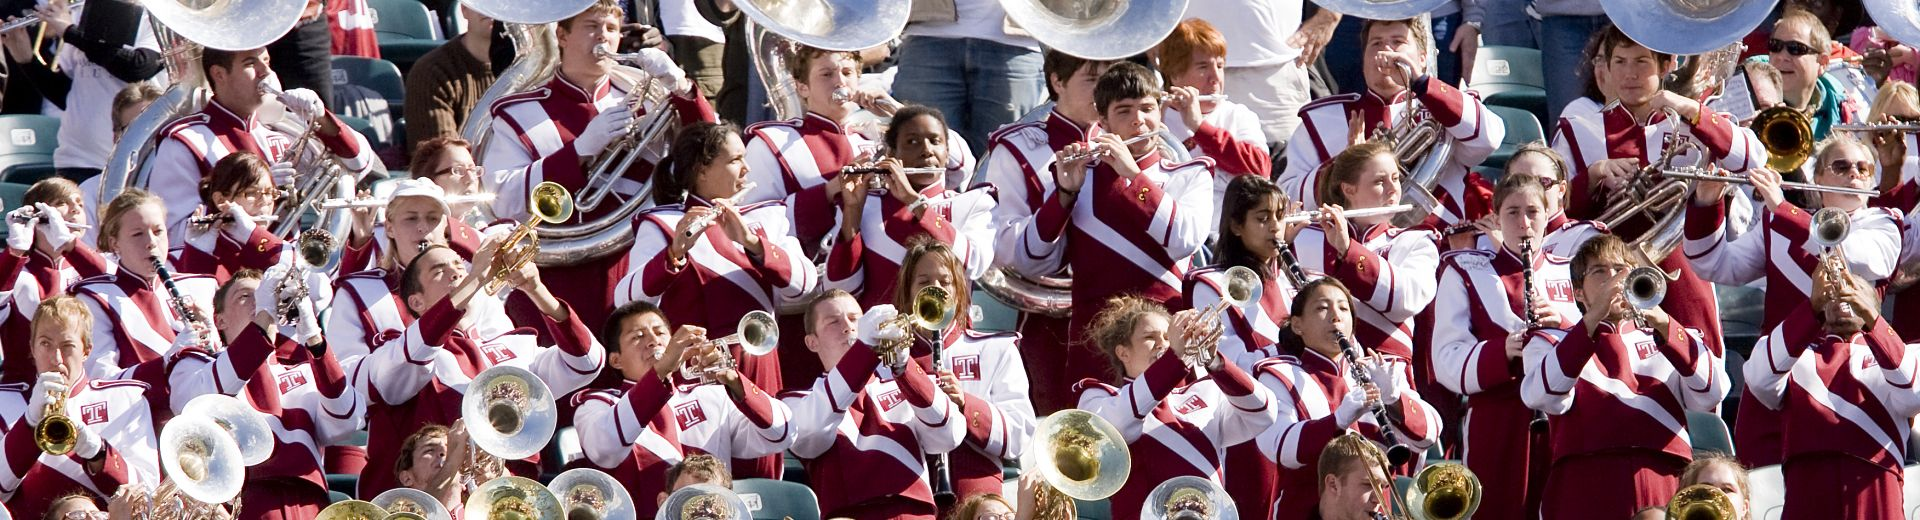 Marching band members playing their instruments, wearing cherry and white uniforms